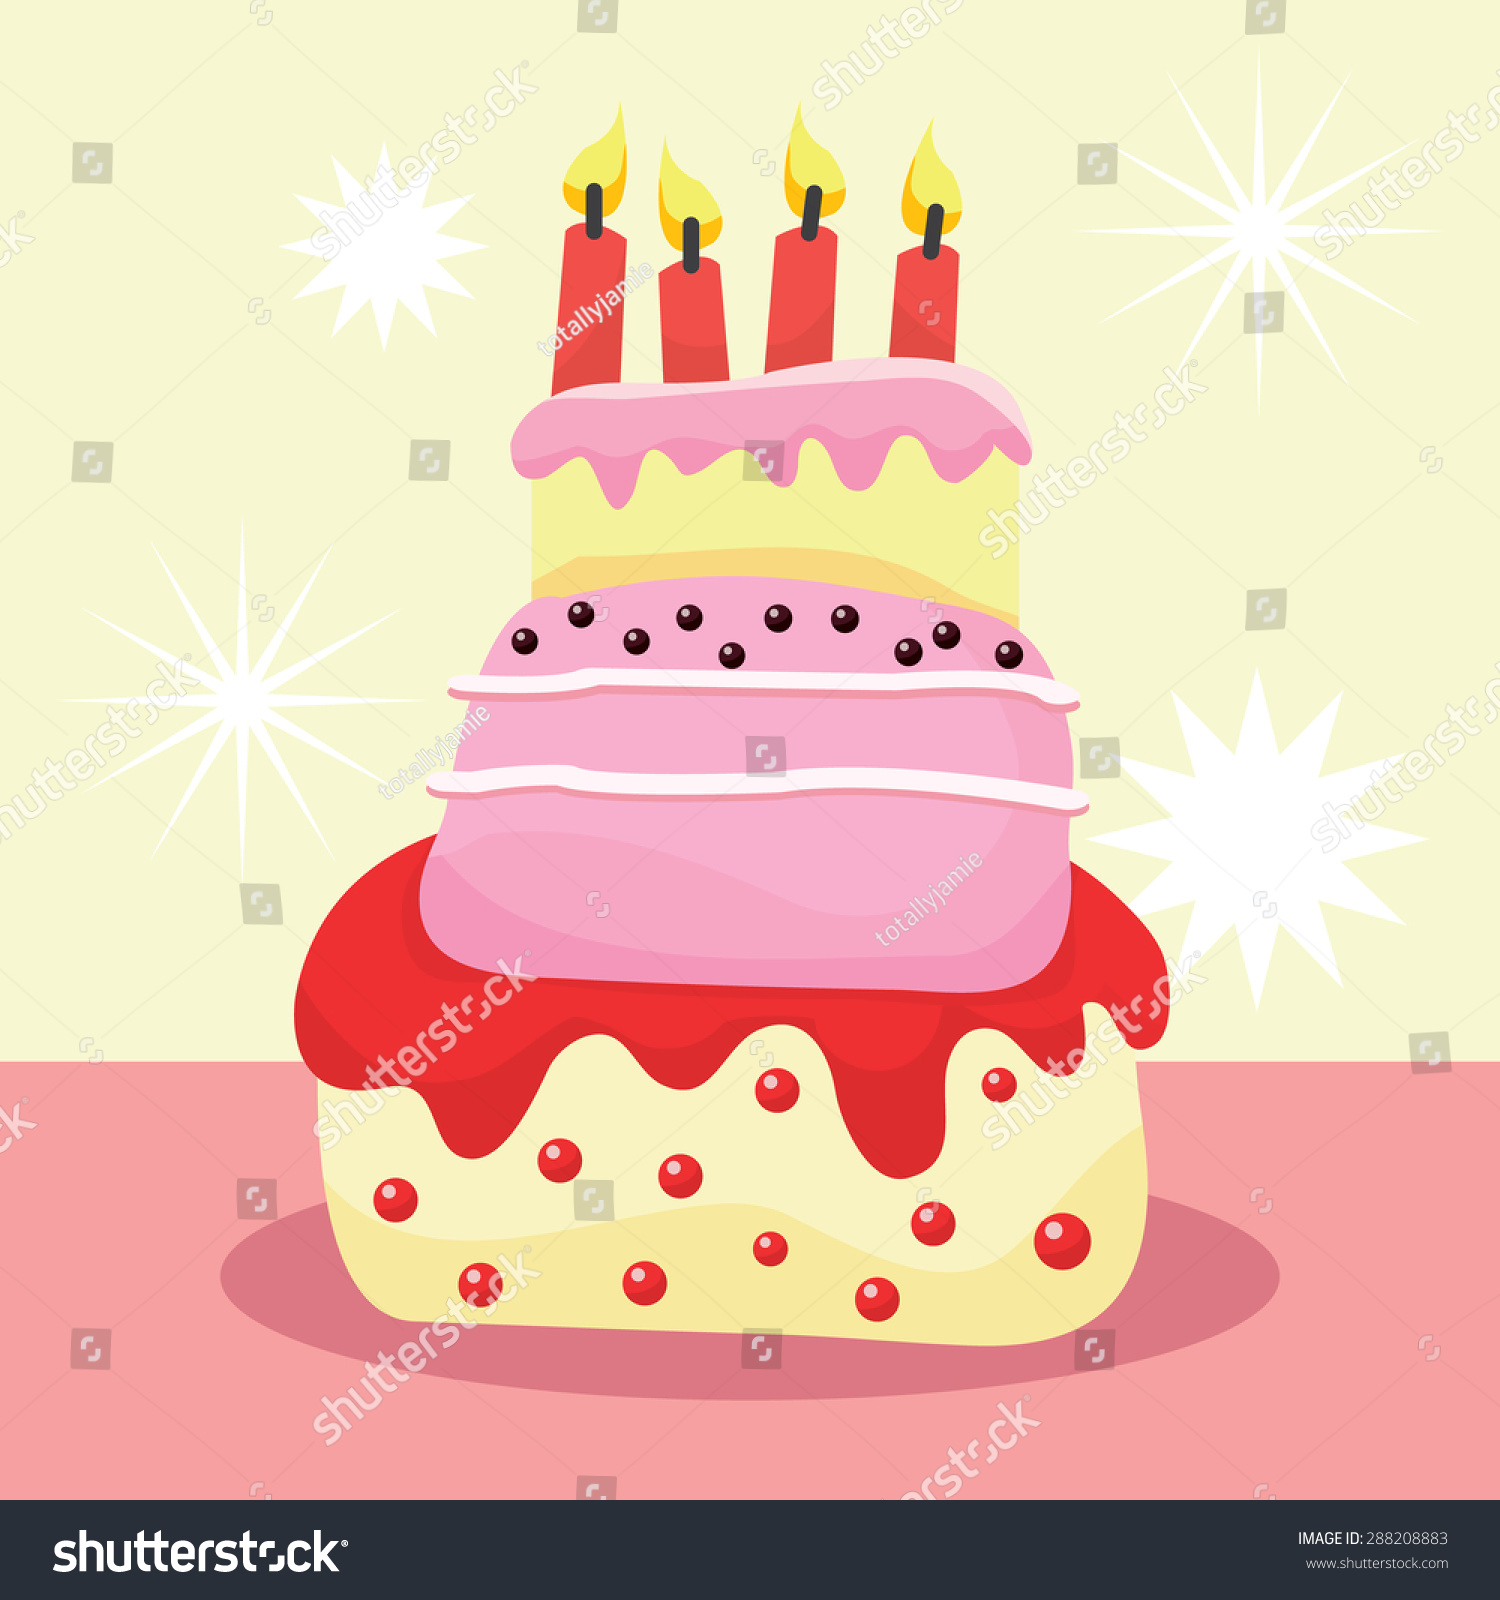 A Vector Illustration Of A Whimsical Three Tier Birthday Cake With